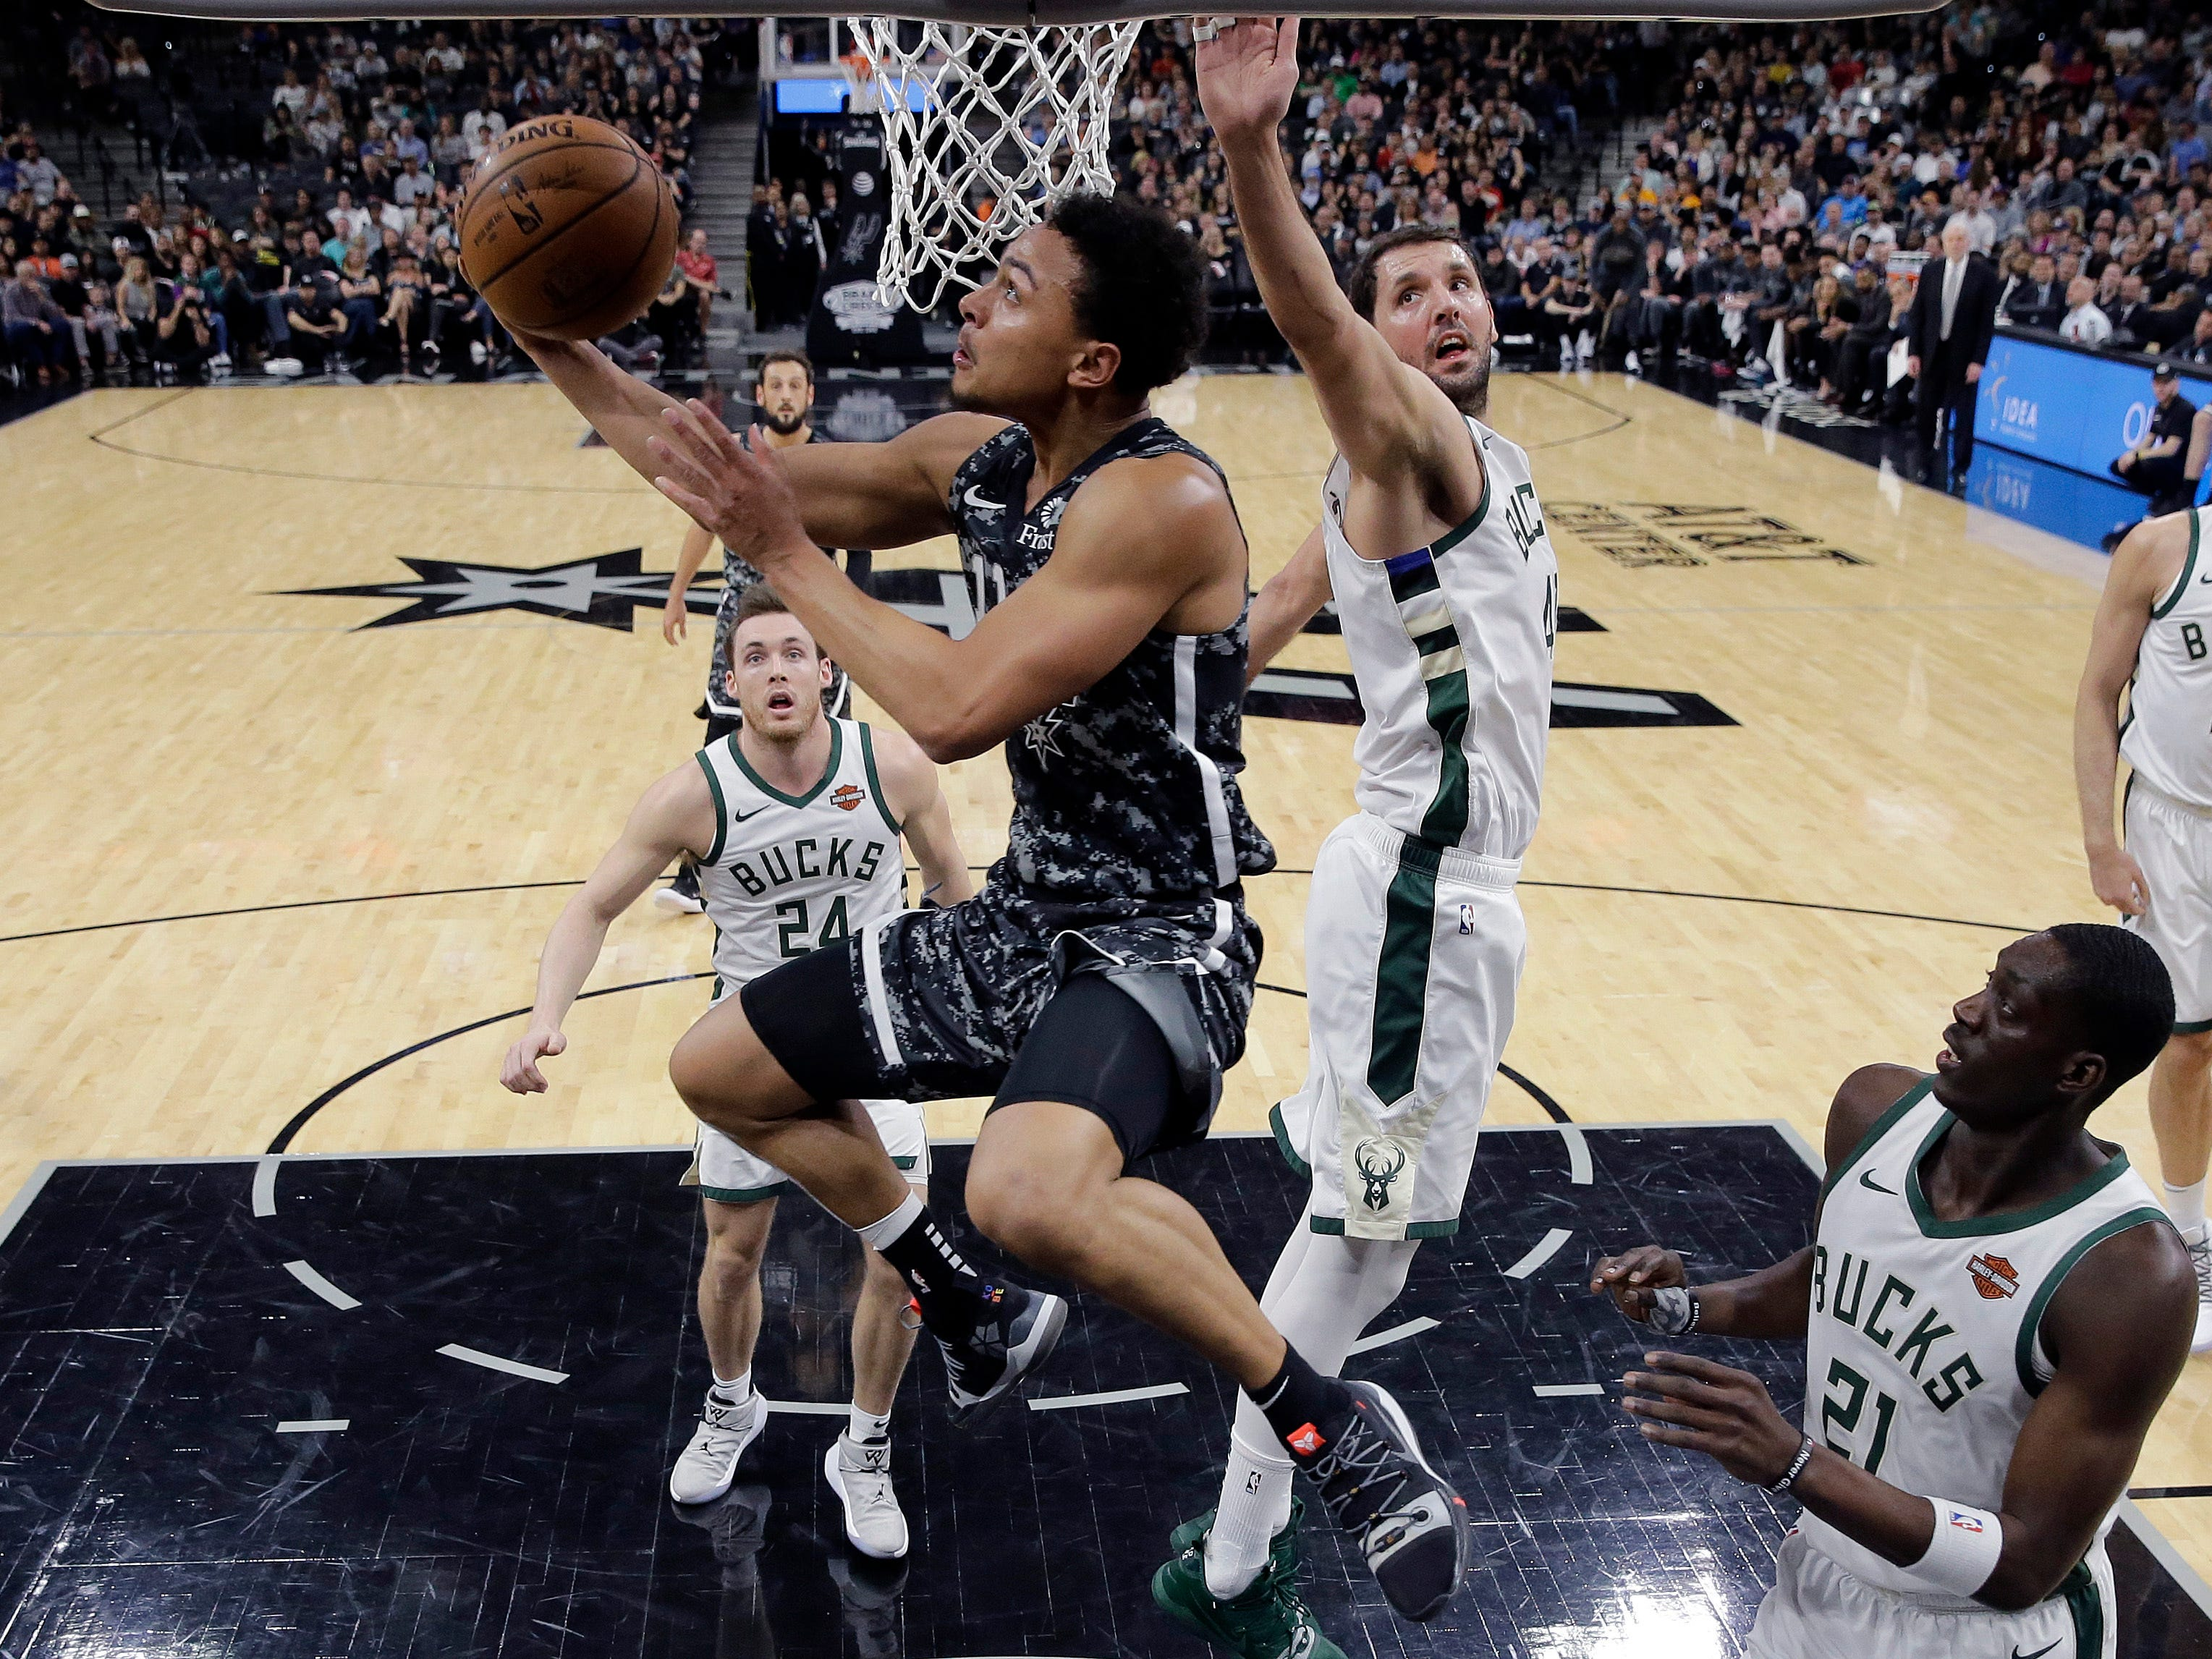 Spurs guard Bryn Forbes goes past Bucks forward Nikola Mirotic and duck under the basket as he goes up for a shot during the first half.